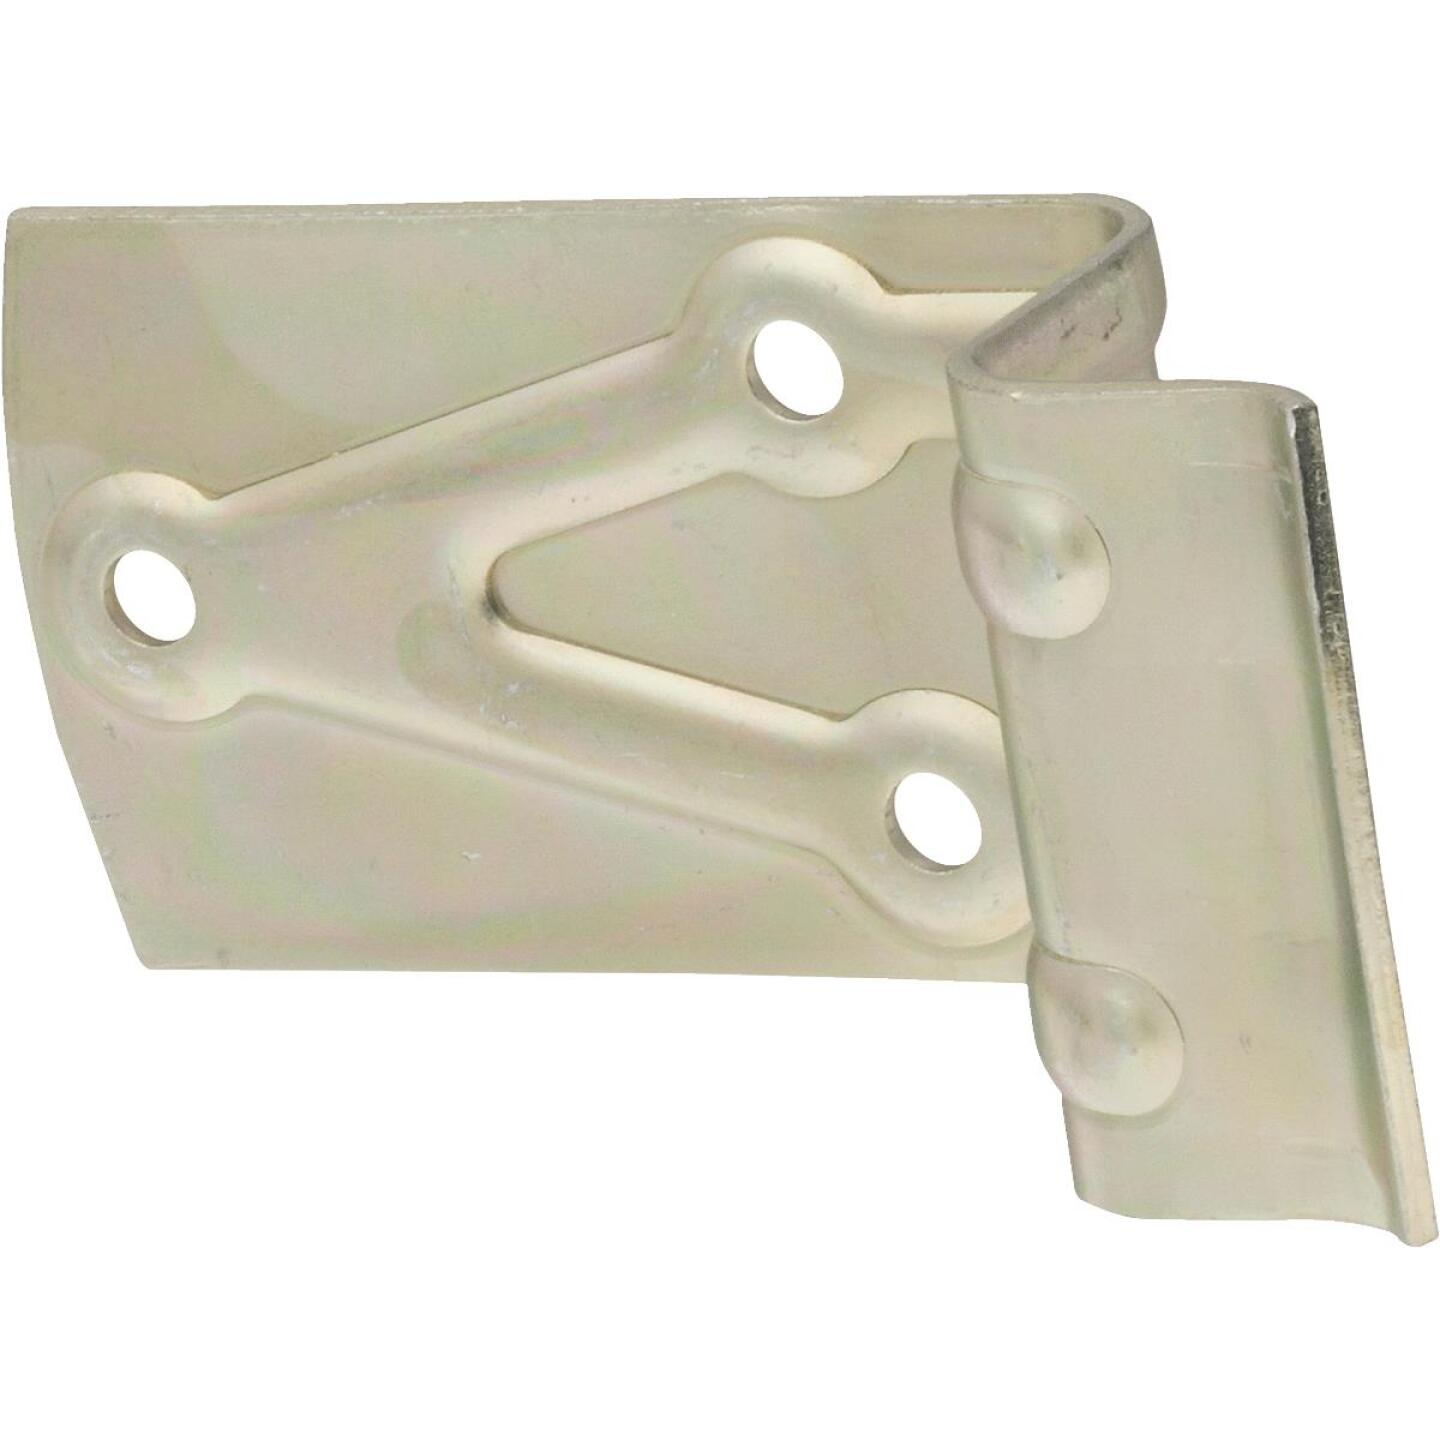 National Zinc-Plated 2 In. Barn Door Bumper Image 1